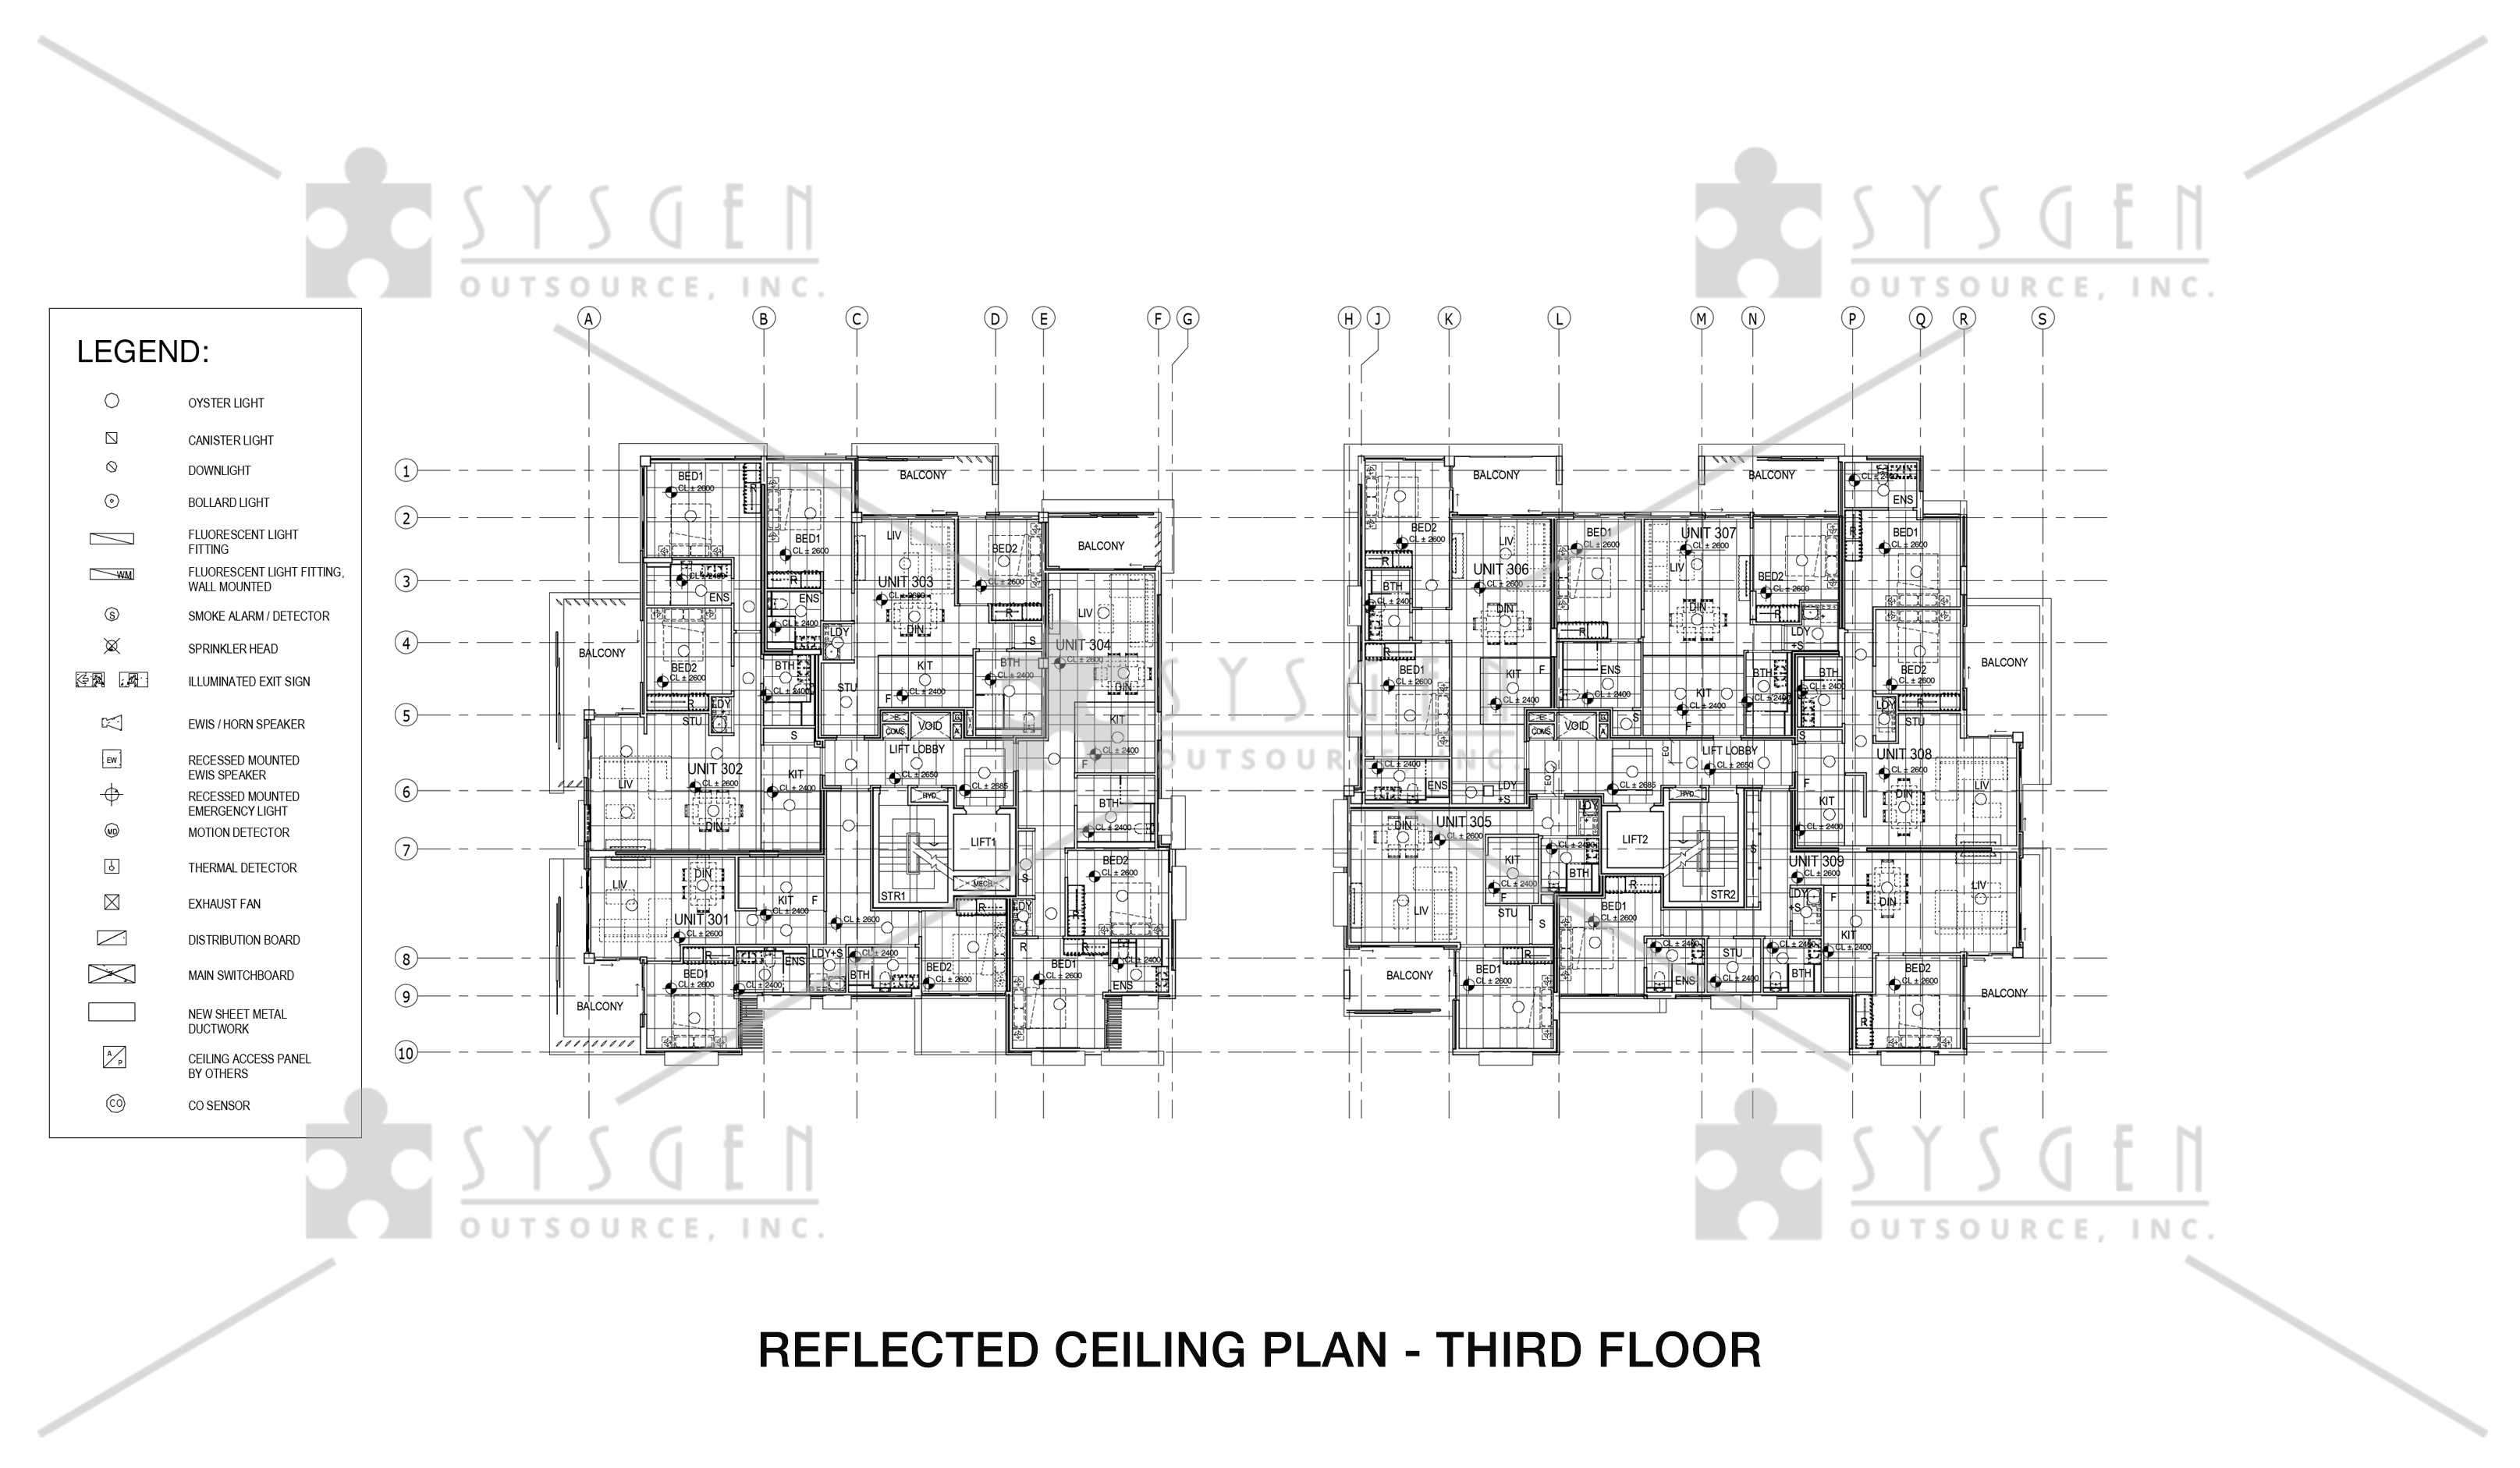 sysgen-outsource-cad-outsourcing-services-cad-conversion-revit-4-storey-residentialss29